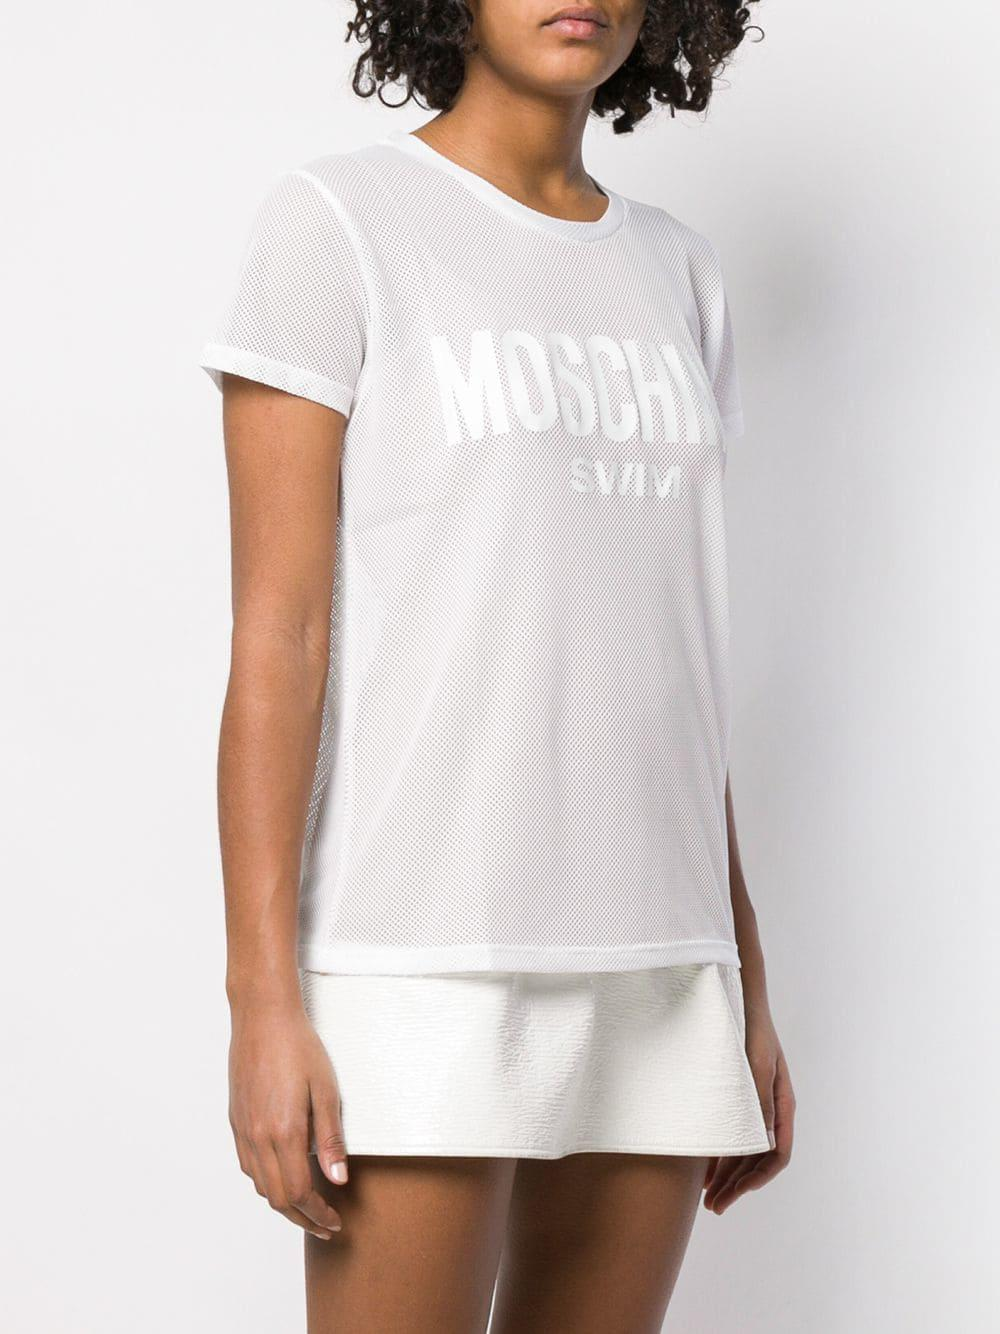 0ee63f03c56d Moschino - White Sheer Logo Patch T-shirt - Lyst. View fullscreen